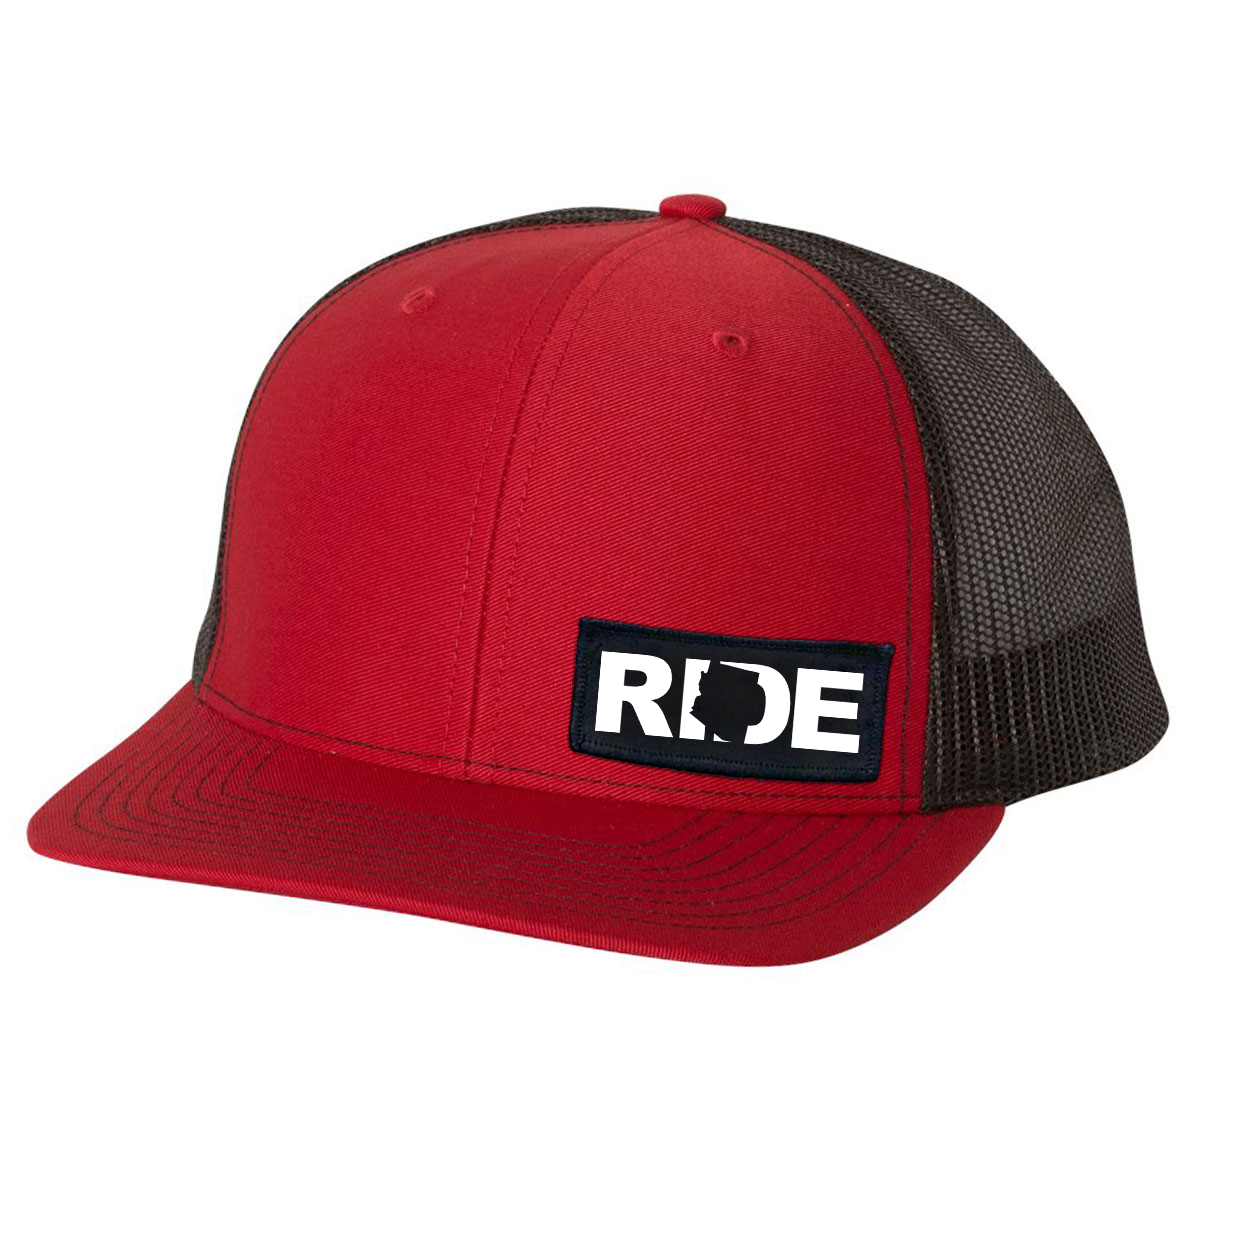 Ride Arizona Night Out Woven Patch Snapback Trucker Hat Red/Black (White Logo)